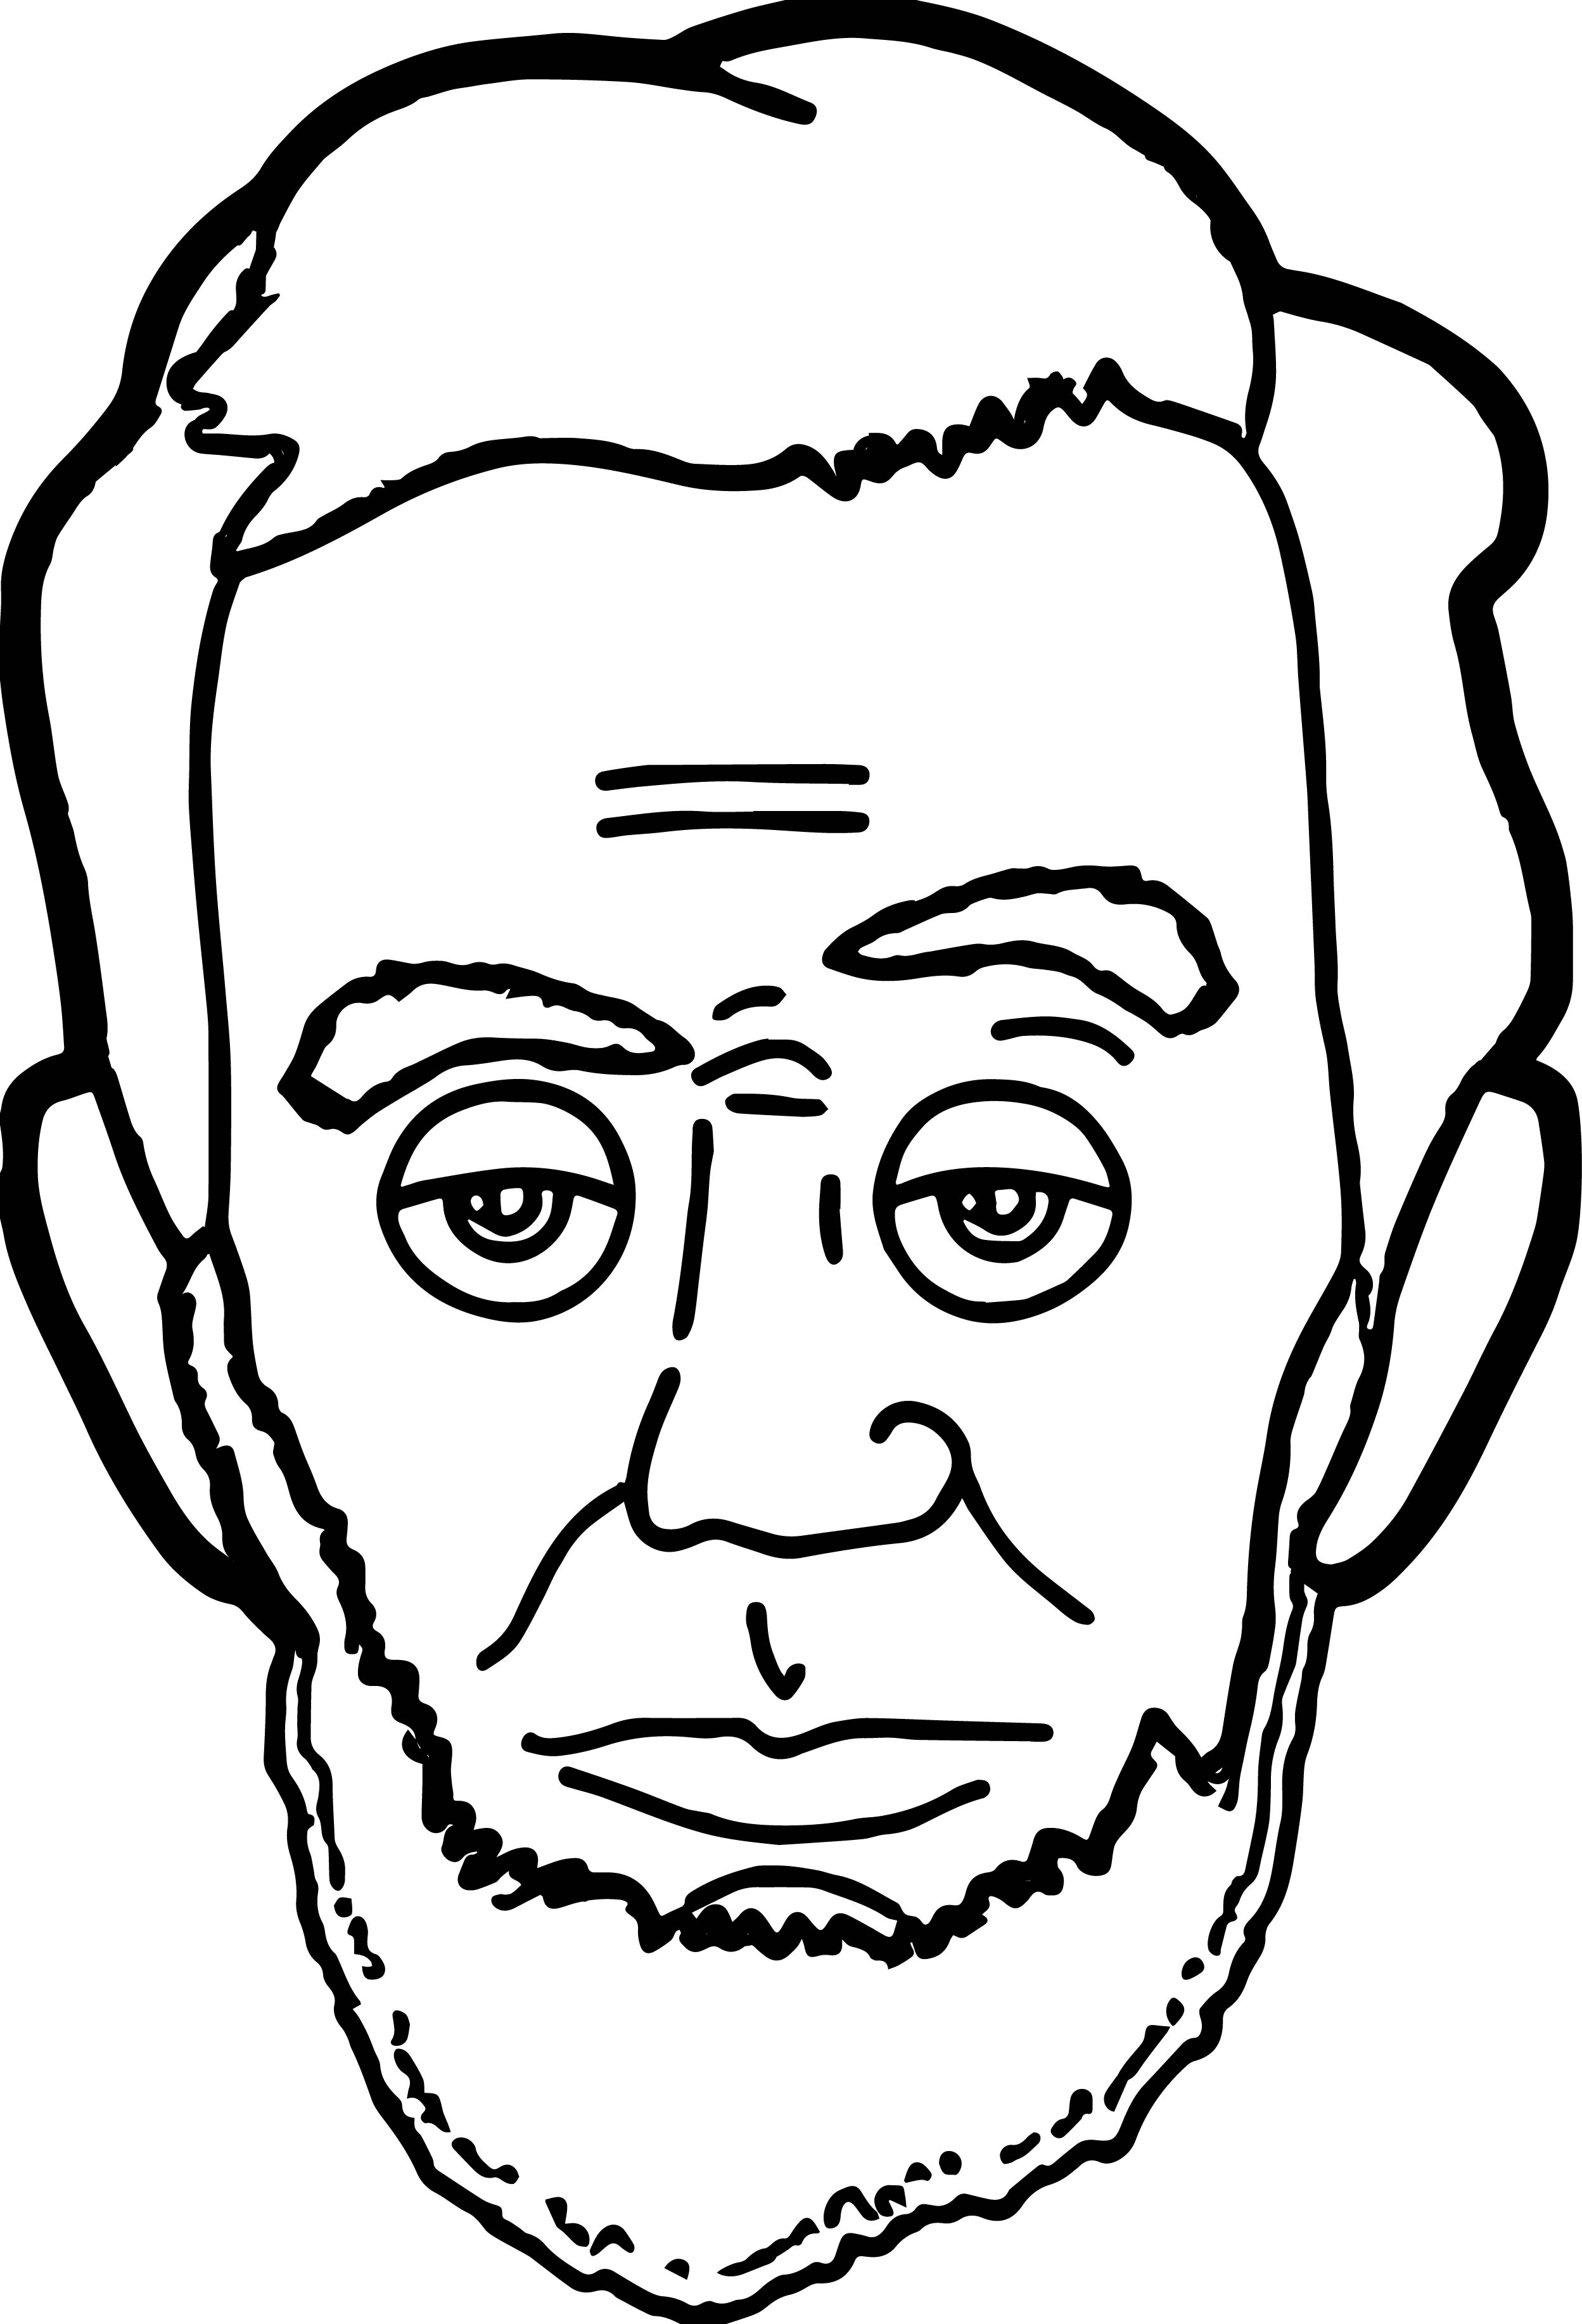 2497x3668 President Drawing Outline For Free Download